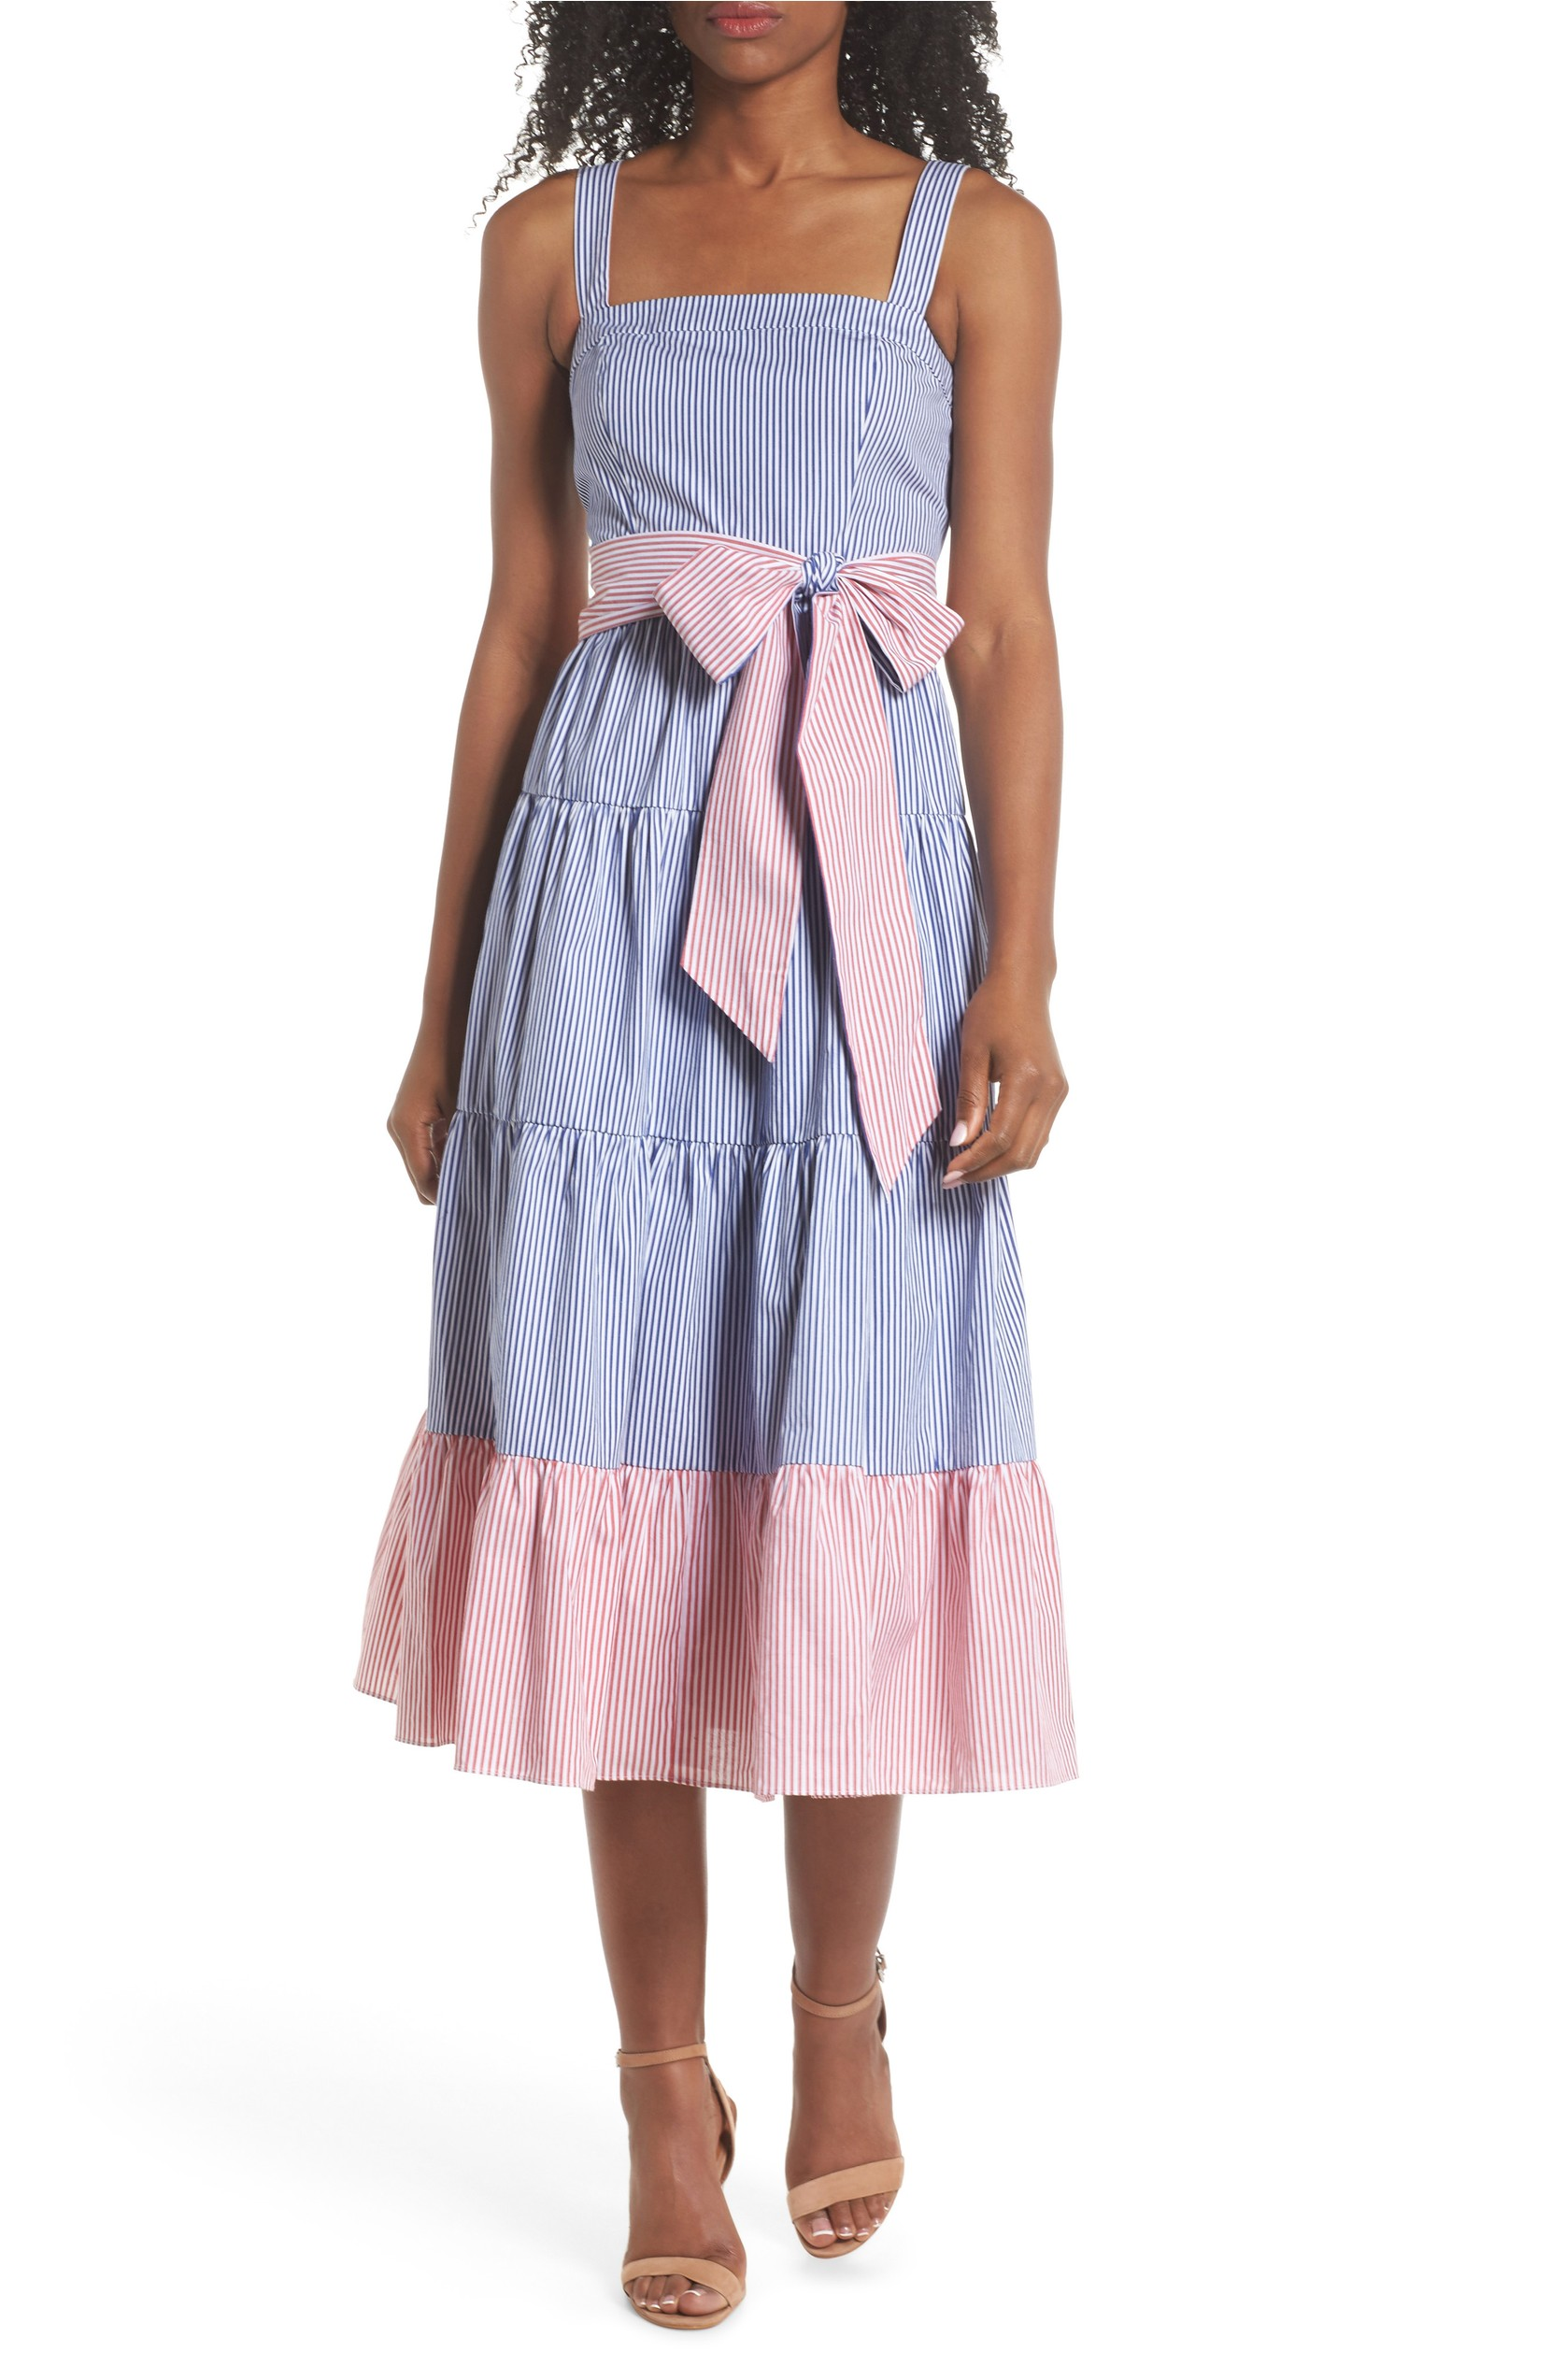 This Sleeveless Tiered Sundress was $158 and is now $78.98 with 50% off Free Shipping. Beckon the sun in this sweet sleeveless frock styled with a drapey, waist-cinching bow, a tiered ruffled skirt and a contrasting stripe print.<p>(Image: Nordstrom)</p>